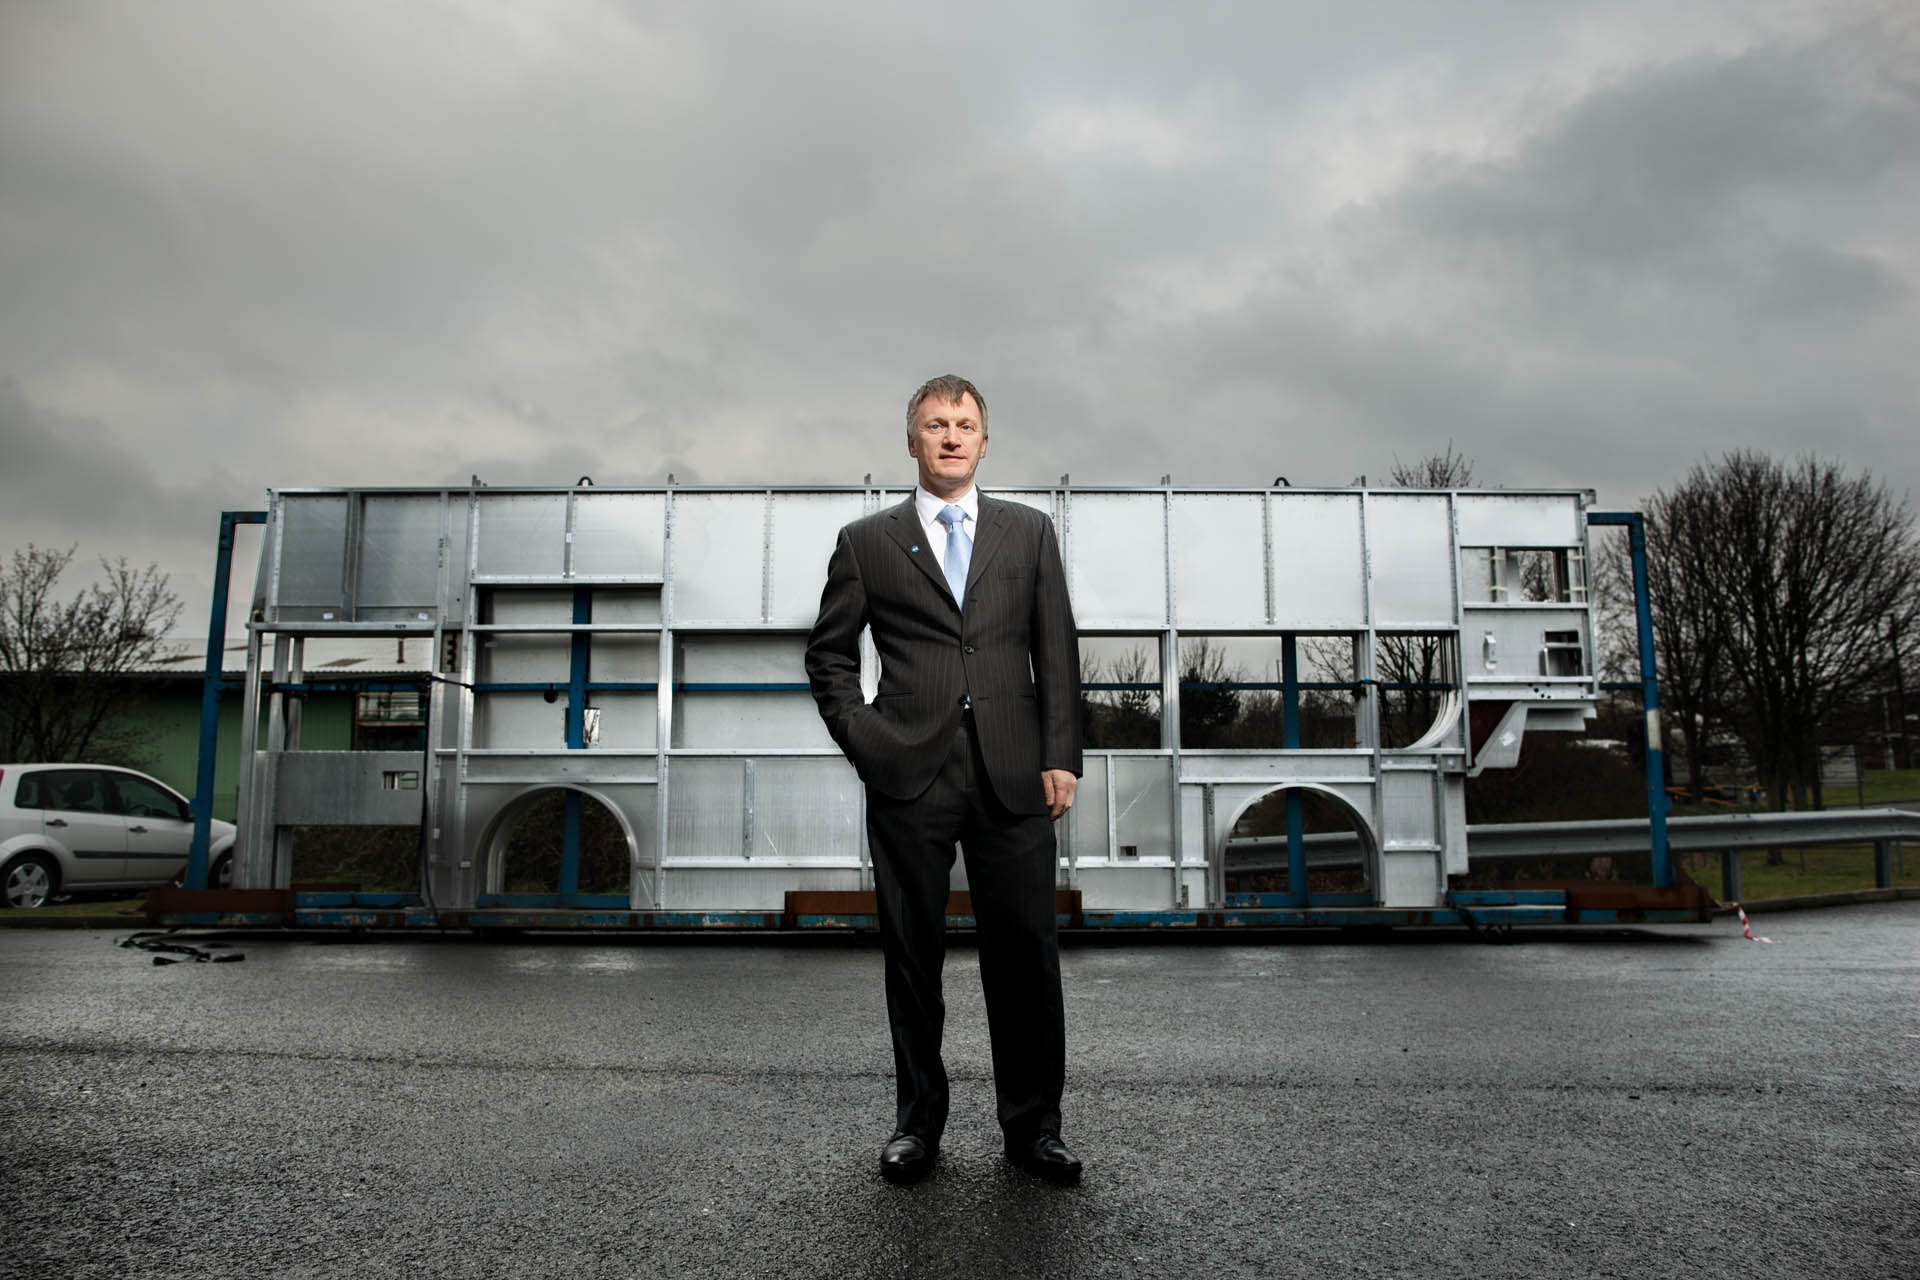 Ivan McKee Photographed for the Scottish Independence Yes campaign, commissioned by White Light Media